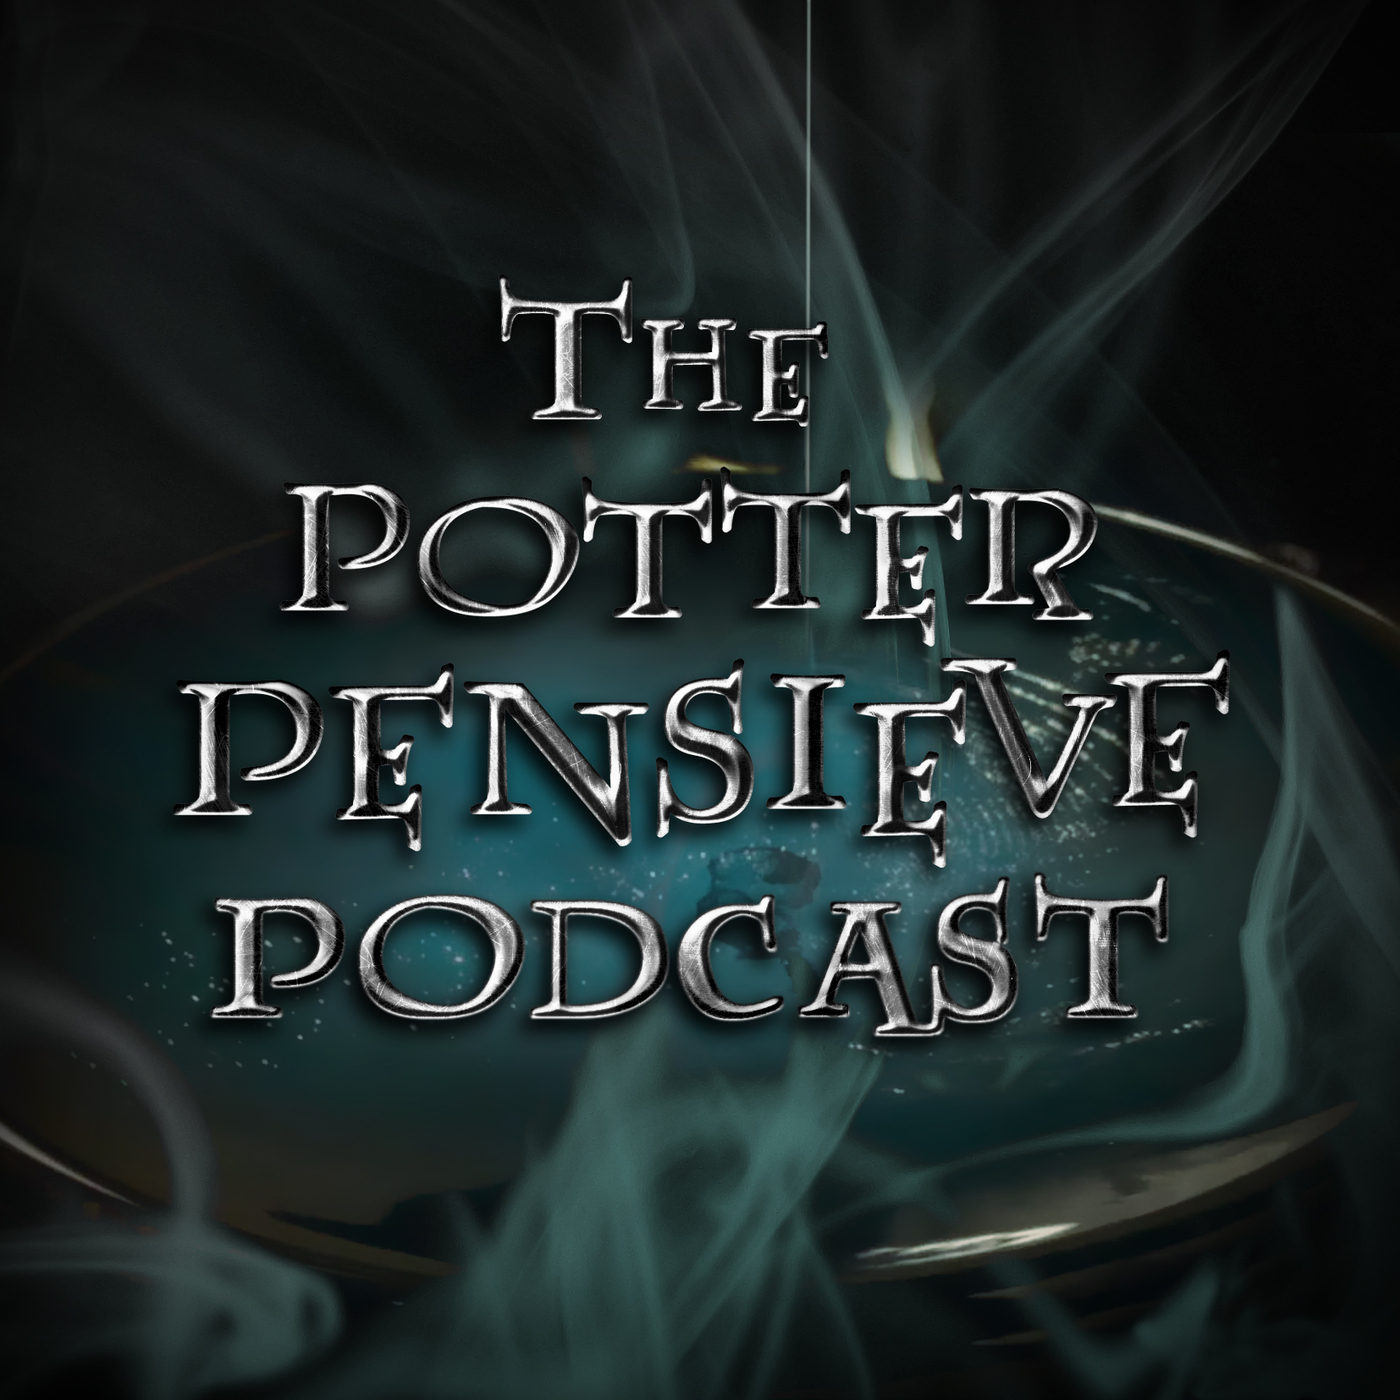 The Potter Pensieve